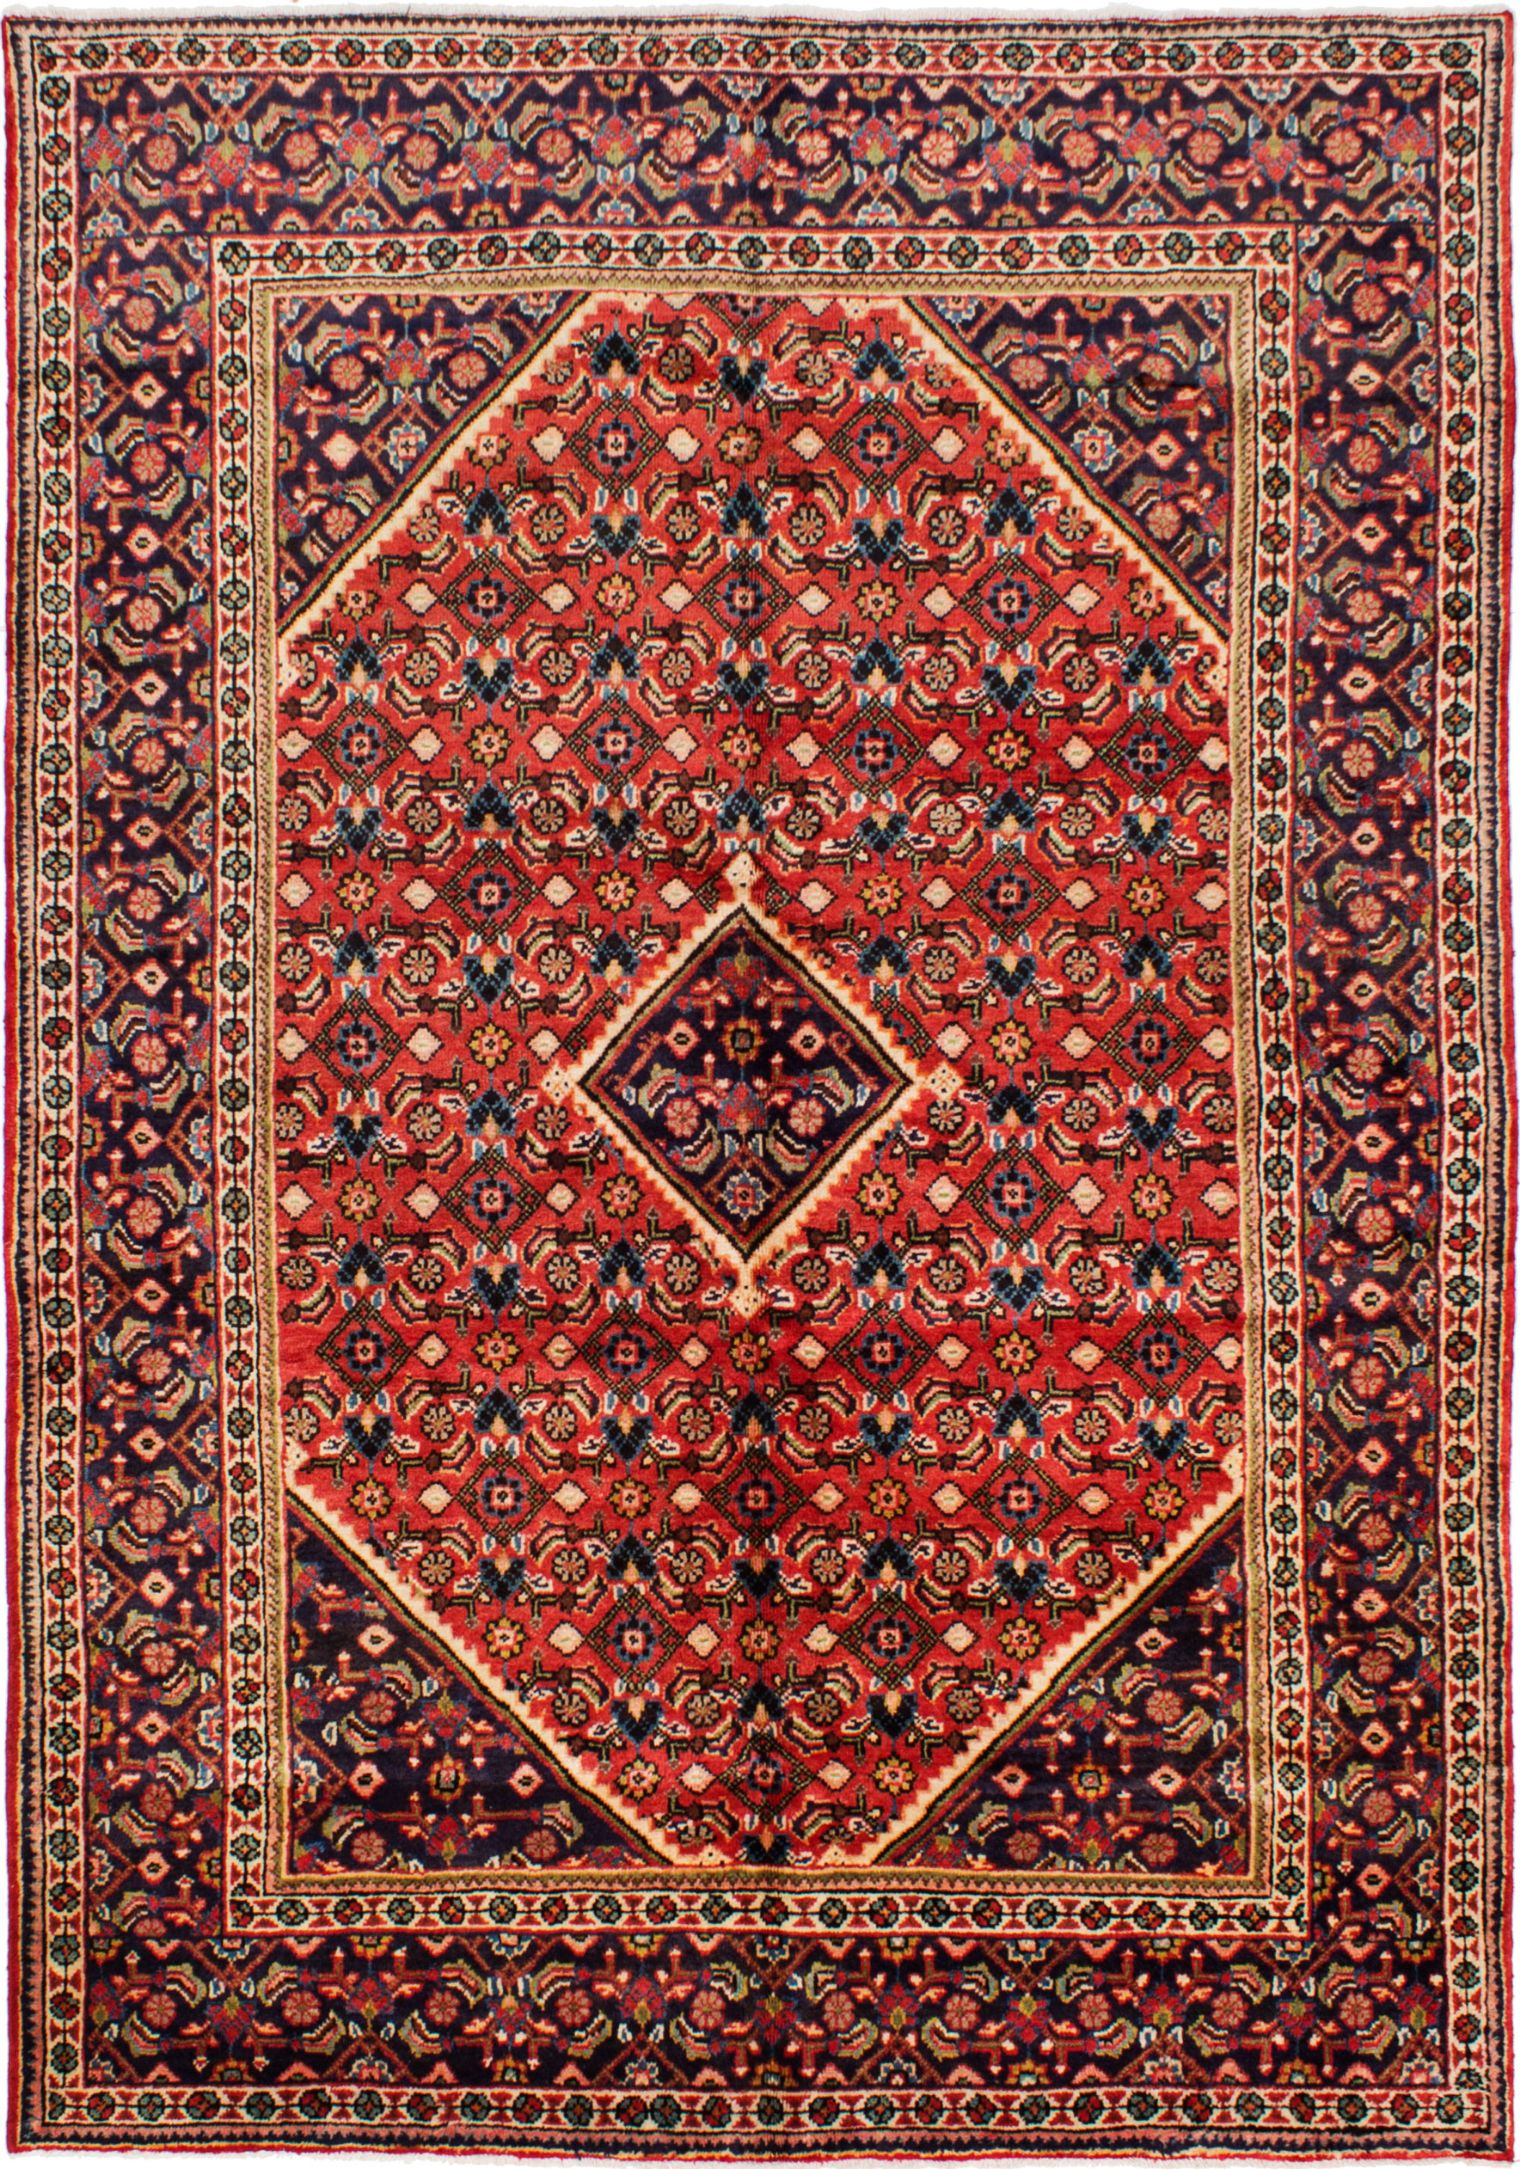 """Hand-knotted Mahal Dark Copper Wool Rug 6'10"""" x 9'11"""" Size: 6'10"""" x 9'11"""""""